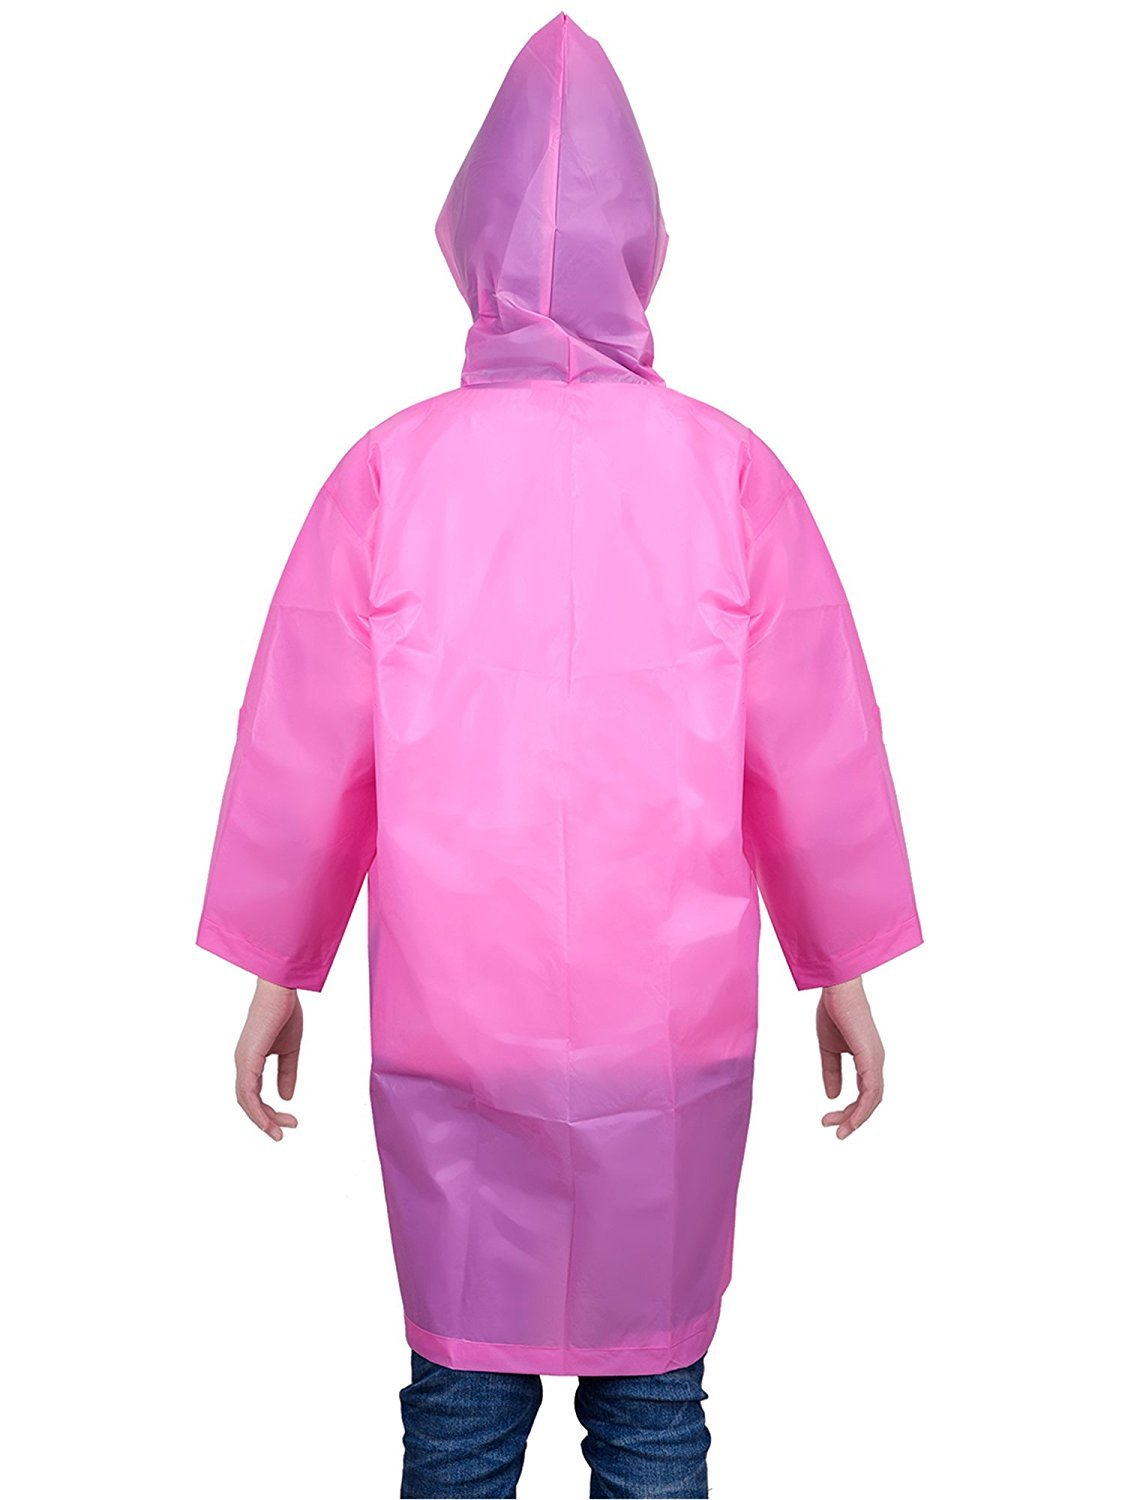 Mudder Kids Children Rain Poncho Raincoat Portable with Hoods and Sleeves (Pink)